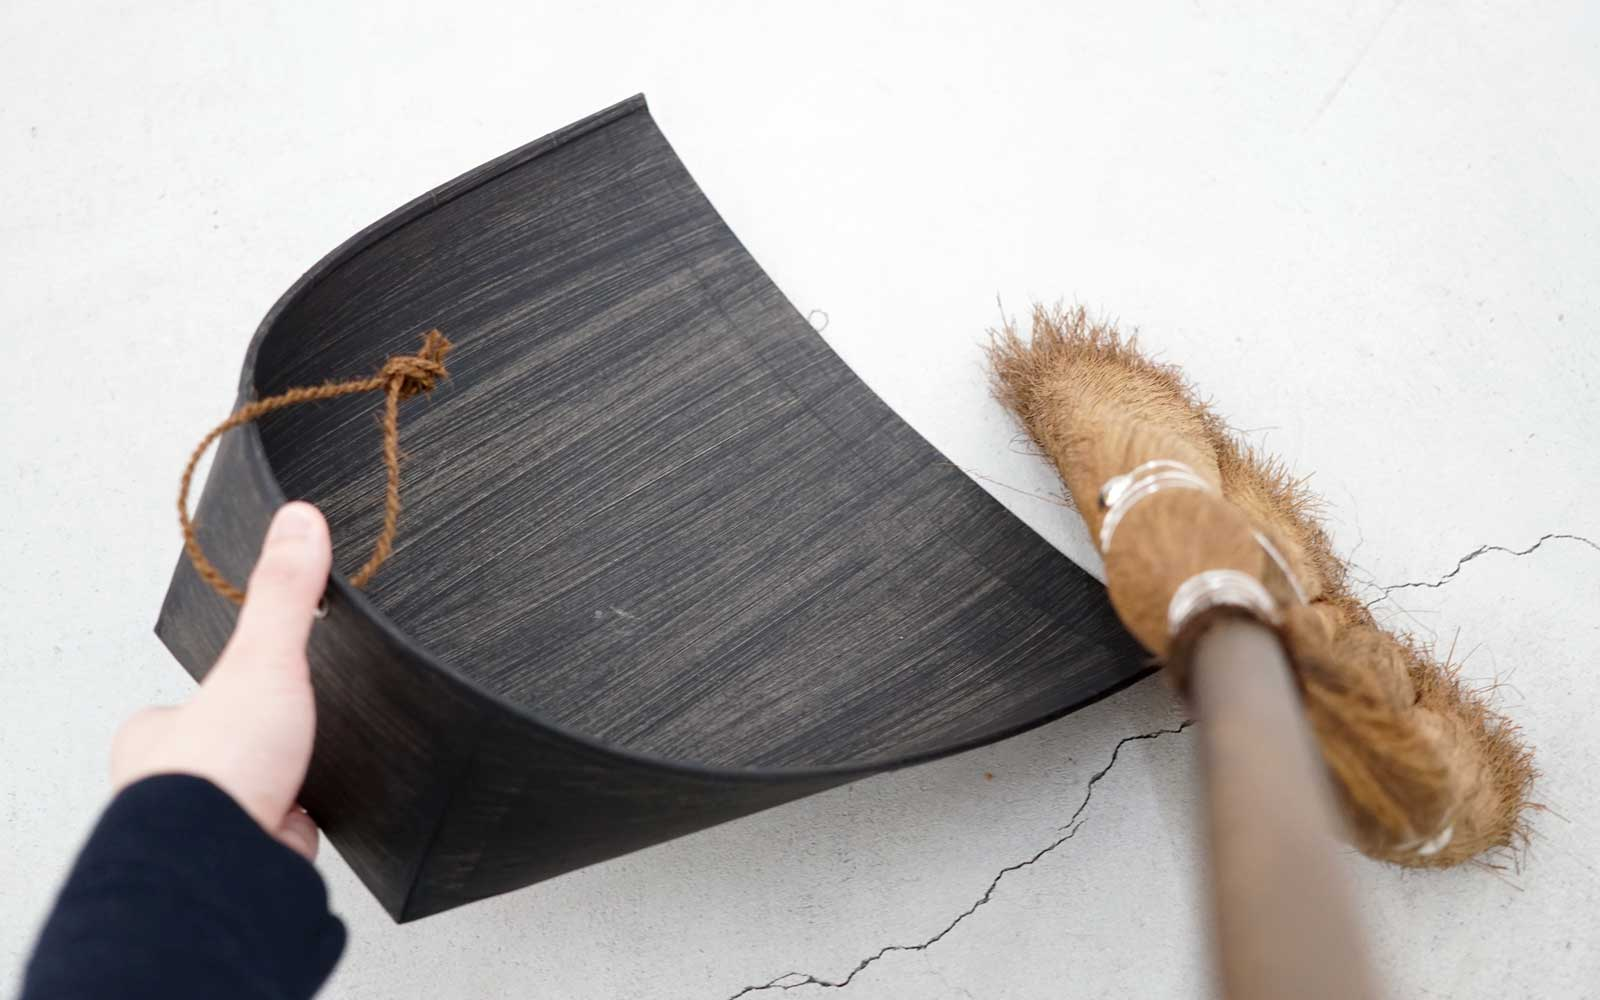 Takada Kōzō also produces dustpans made of washi, a traditional Japanese paper. This black dustpan is a custom-made product.